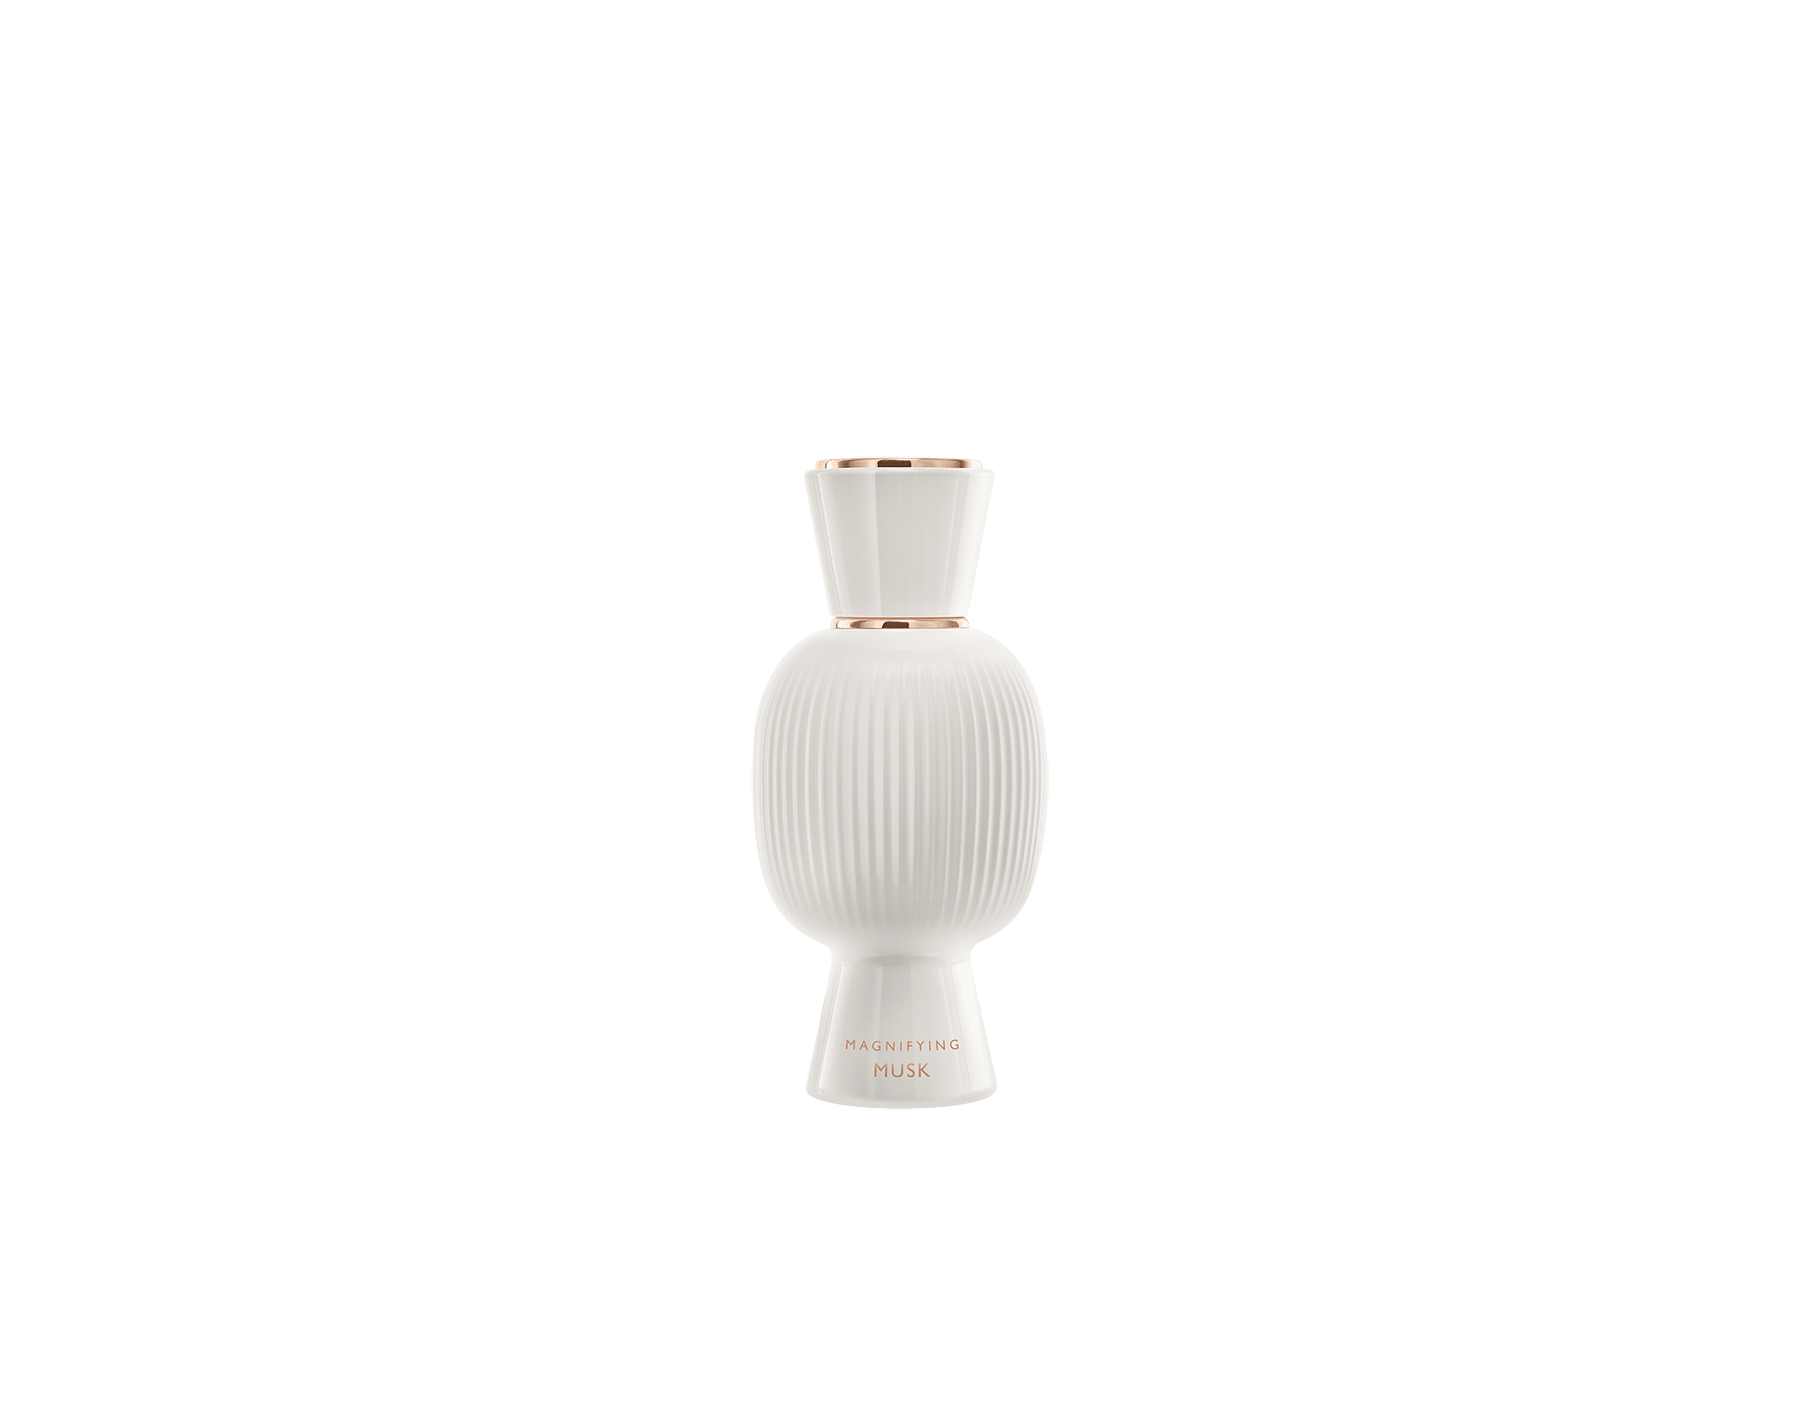 An exclusive perfume set, as bold and unique as you. The sparkling citrus Riva Solare Allegra Eau de Parfum blends with the warm touch of the Magnifying Musk Essence, creating an irresistible personalised women's perfume.  Perfume-Set-Riva-Solare-Eau-de-Parfum-and-Musk-Magnifying image 3